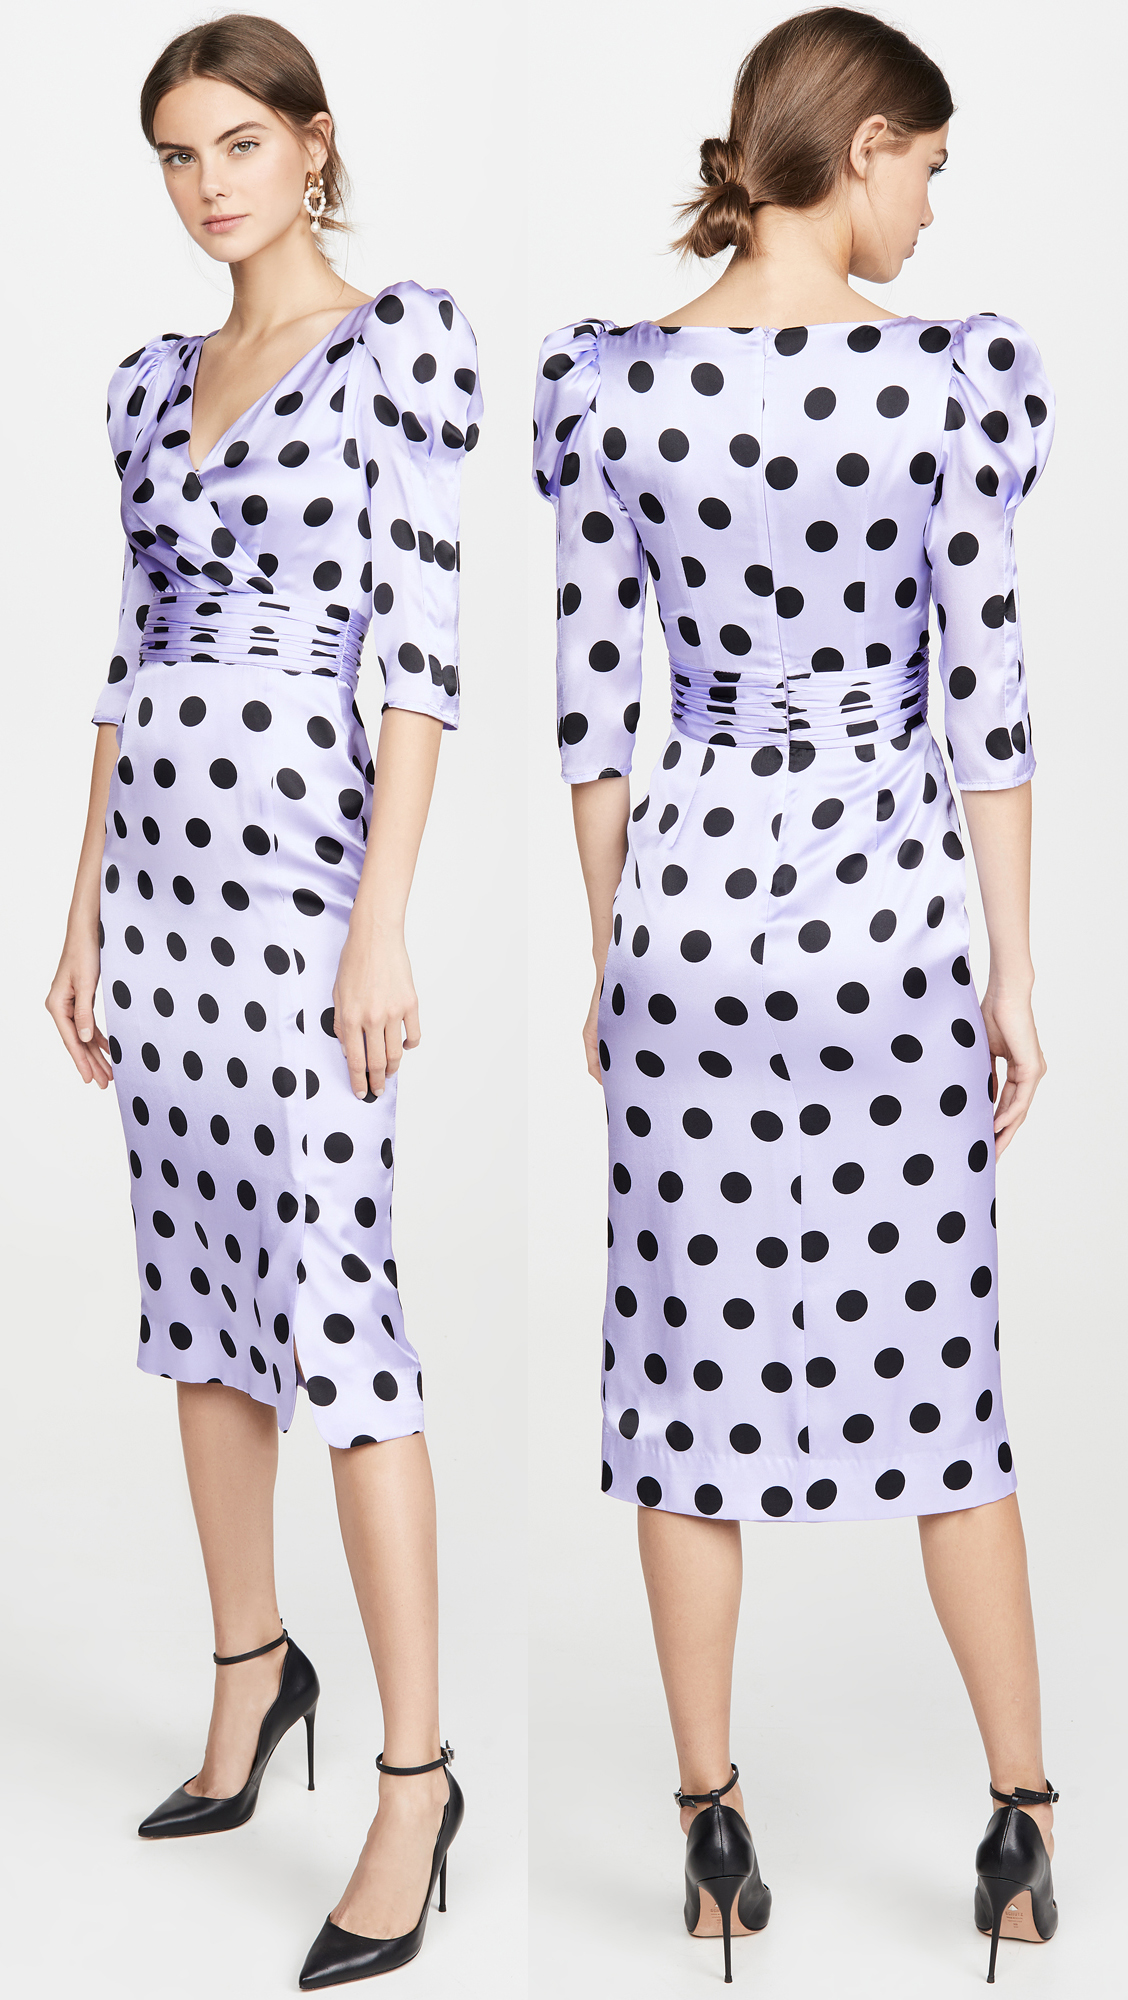 Polka Dot Dress for Kentucky Derby 2020. Lilac Dress for Kentucky Derby 2020. Midi Length dresses for the Kentucky Derby 2020. Dresses for the Kentucky Derby 2020. Dresses allowed for Royal Ascot 2020. Royal Ascot Dress Code 2020. Polka Dot dresses for the races. What to wear to the Races 2020.